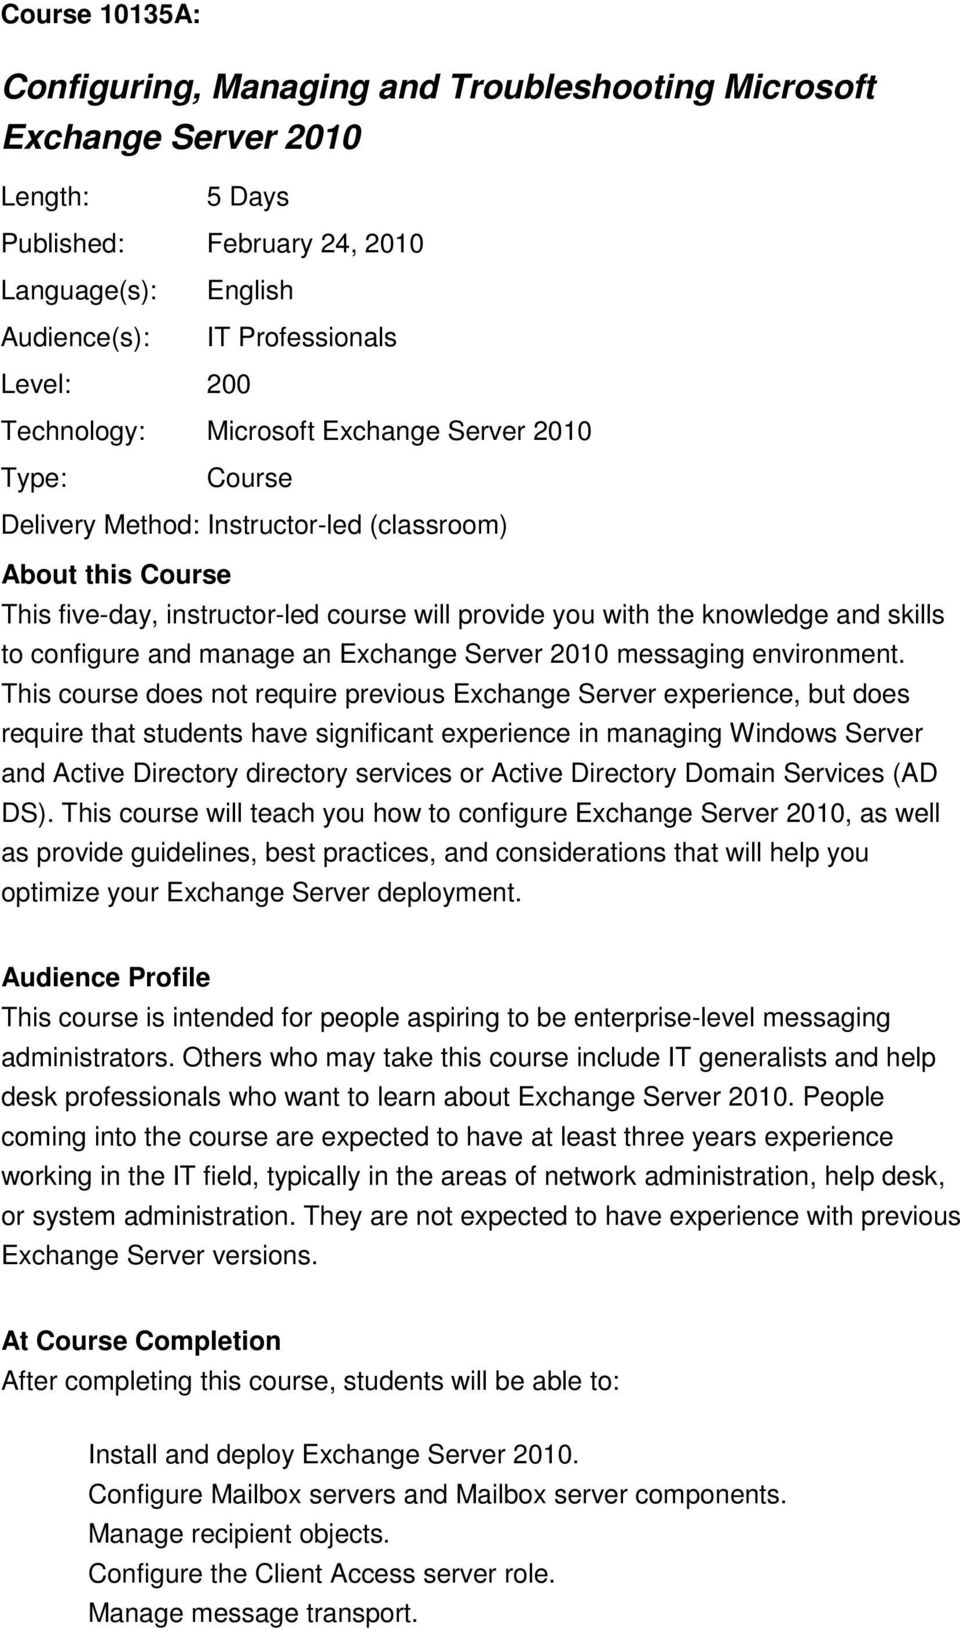 skills to configure and manage an Exchange Server 2010 messaging environment.